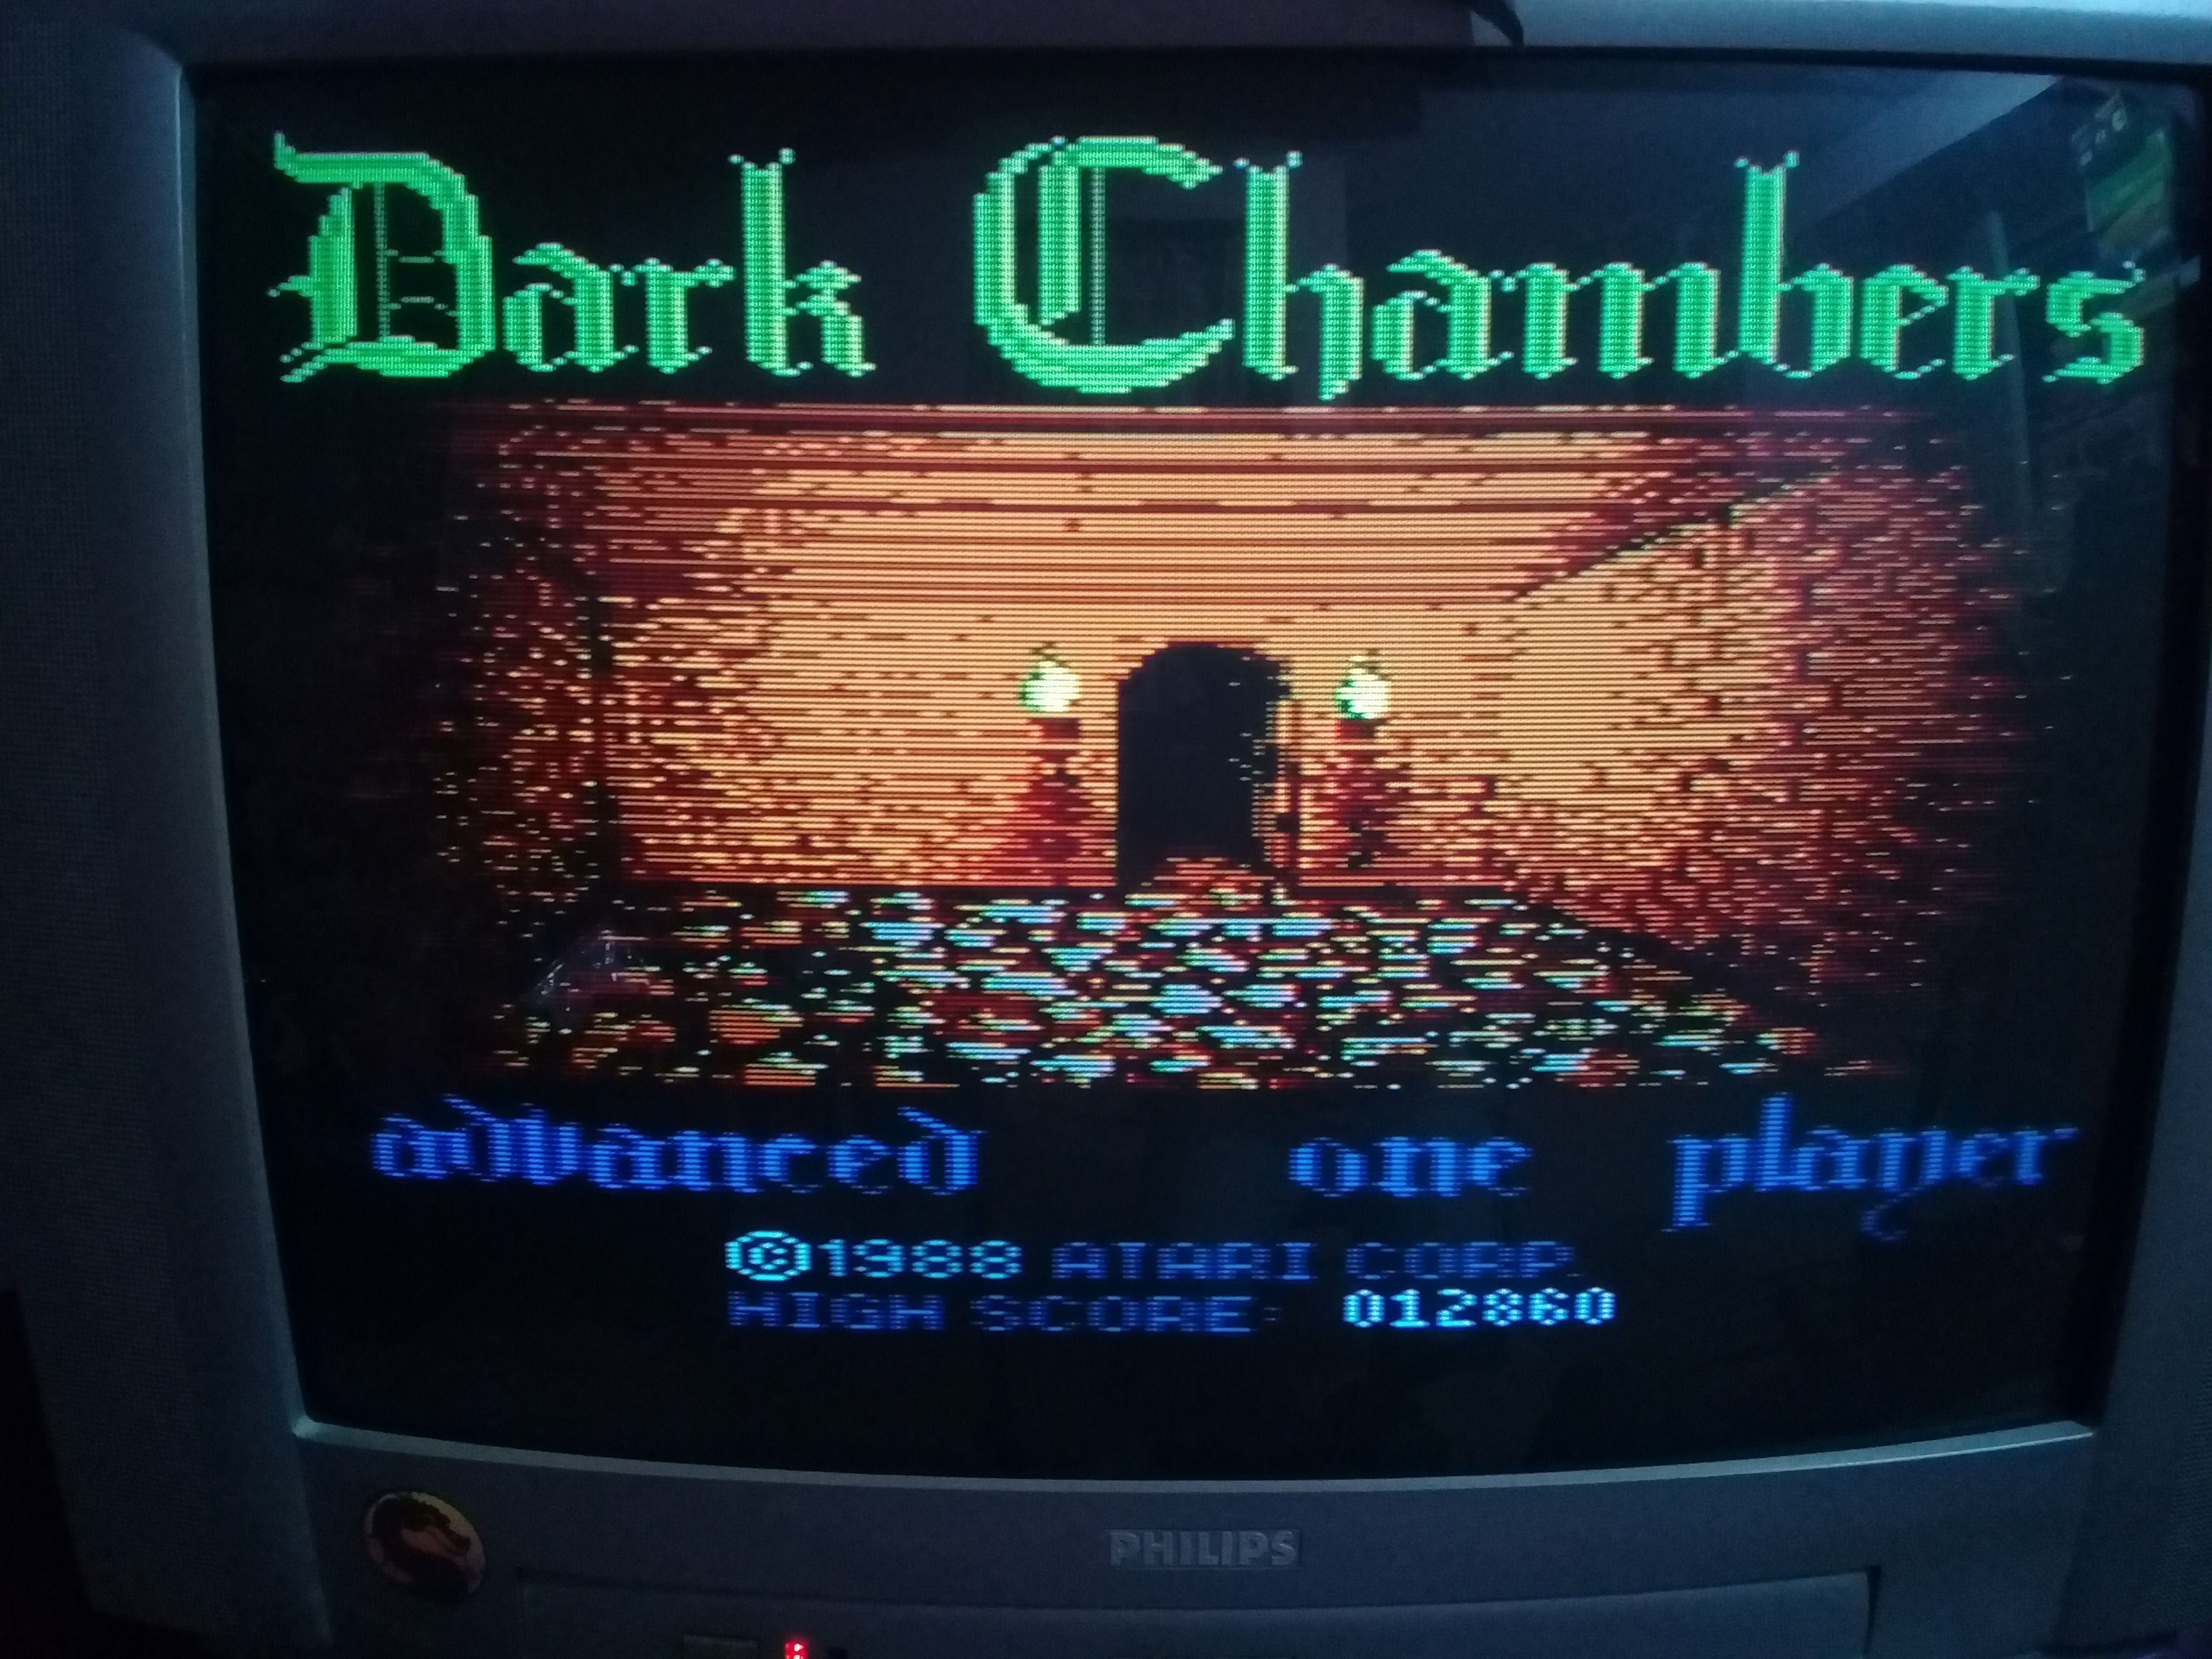 omargeddon: Dark Chambers: Advanced (Atari 400/800/XL/XE) 12,860 points on 2020-04-03 01:28:57